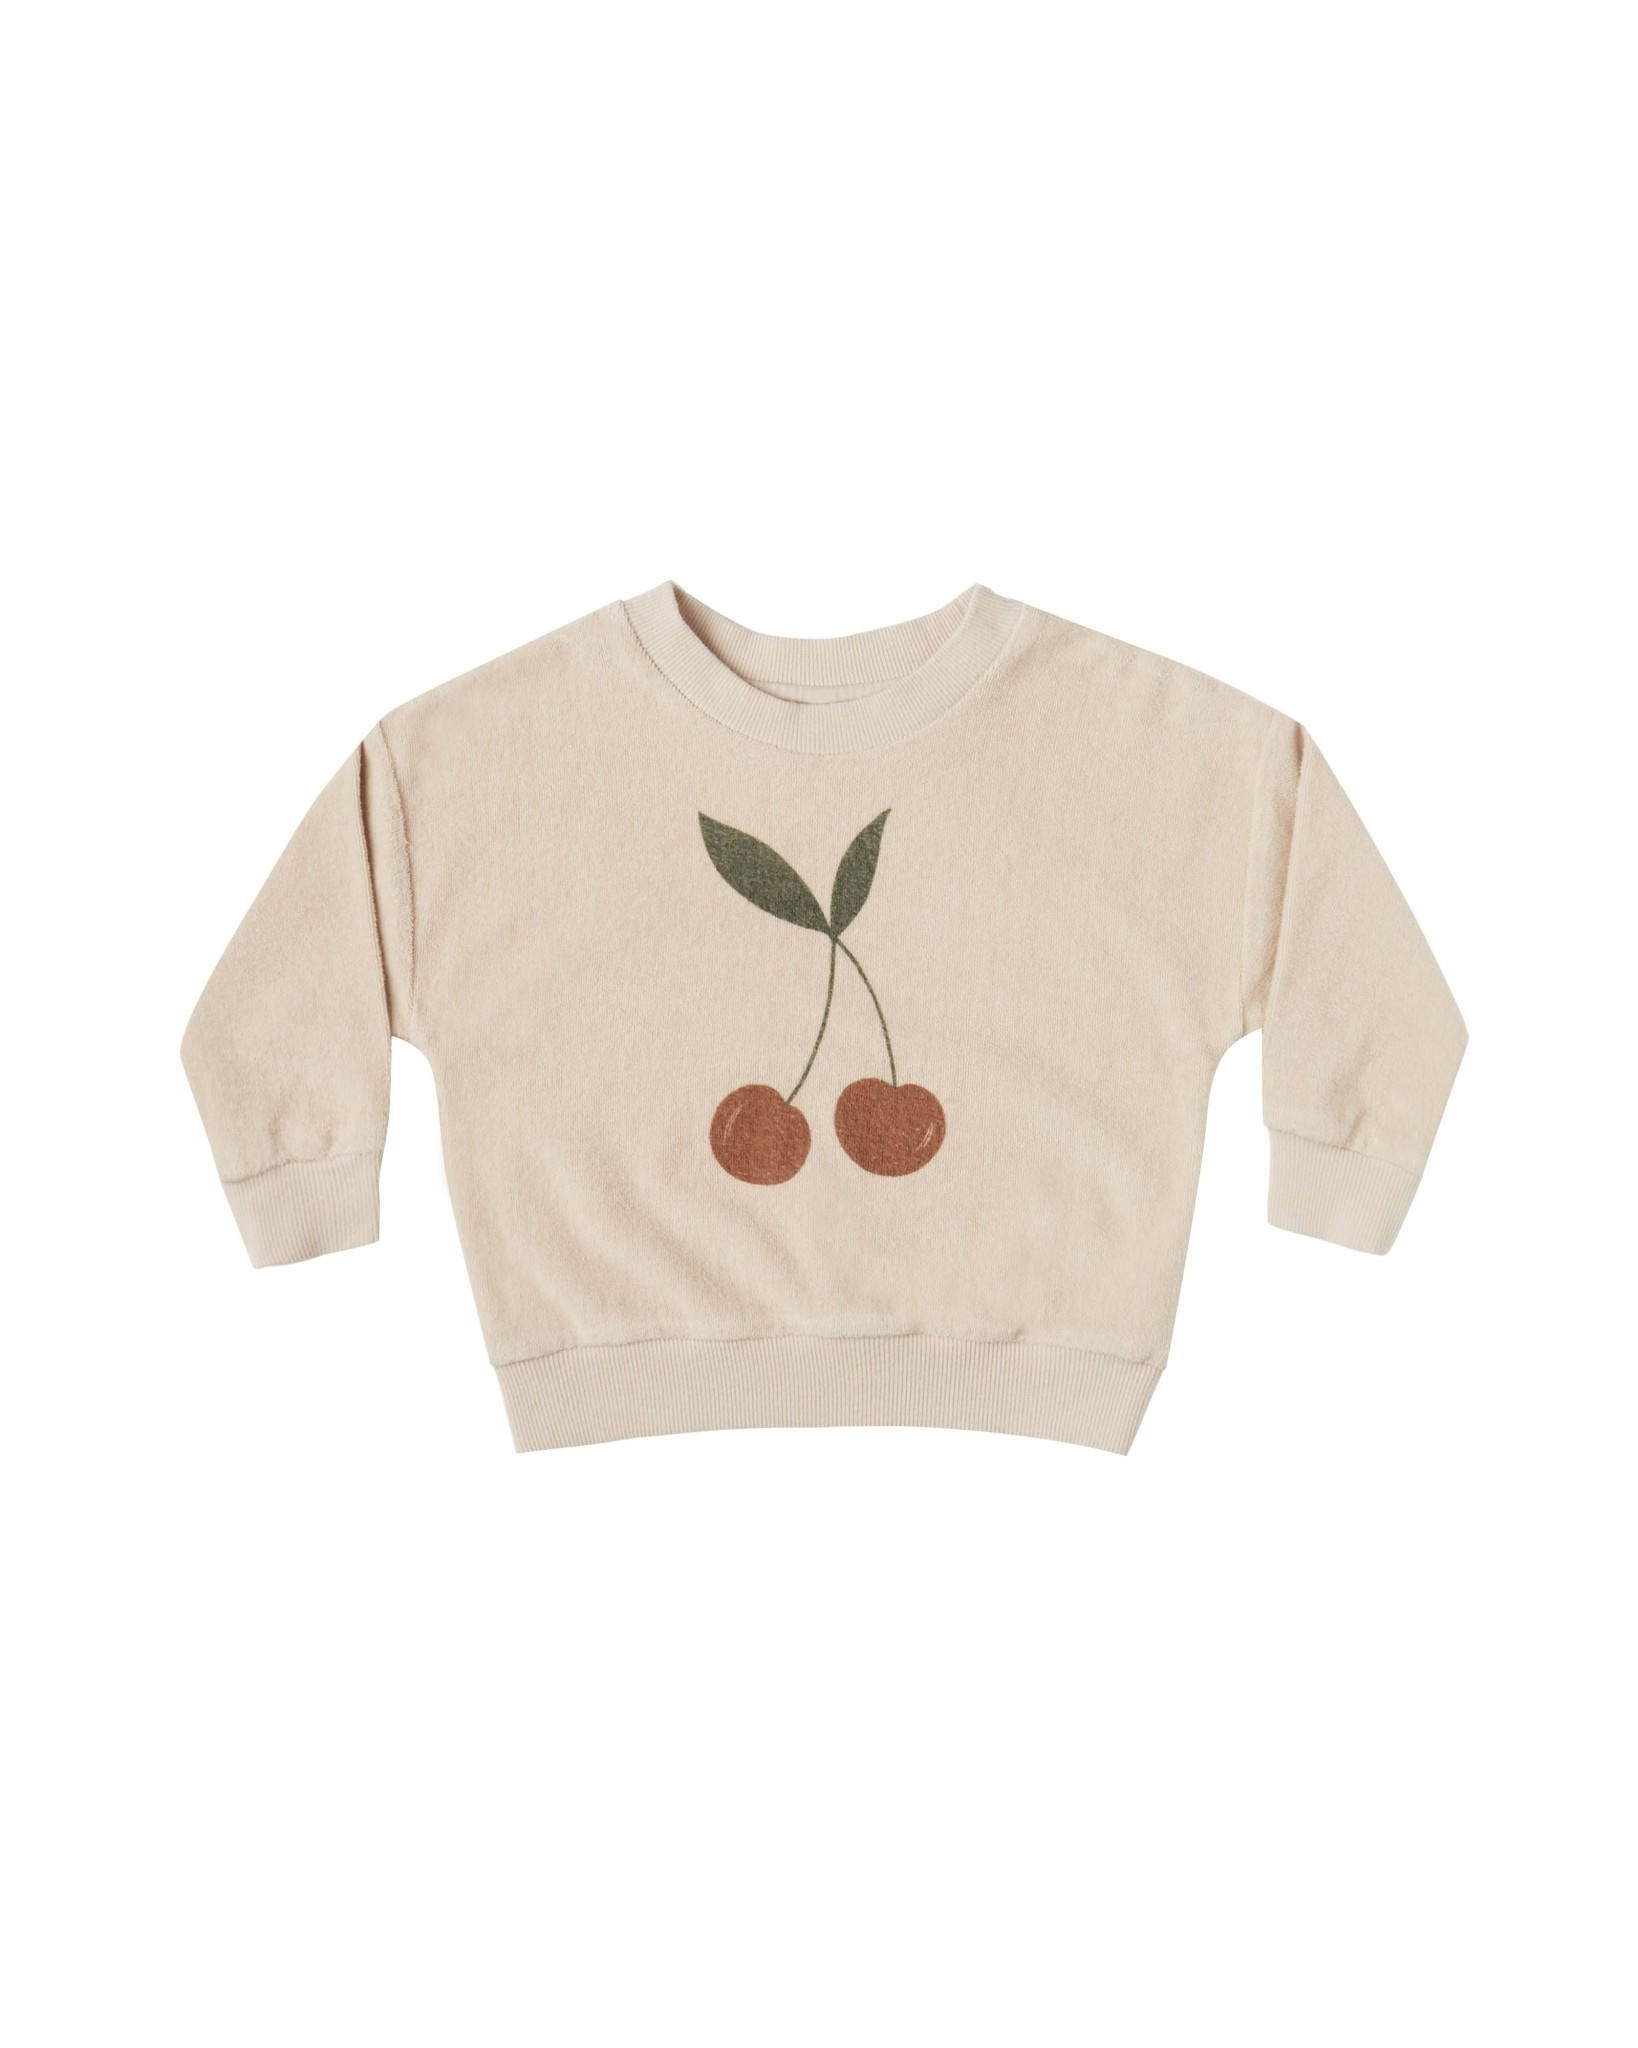 RYLEE AND CRU Cherry Baby Crew Neck